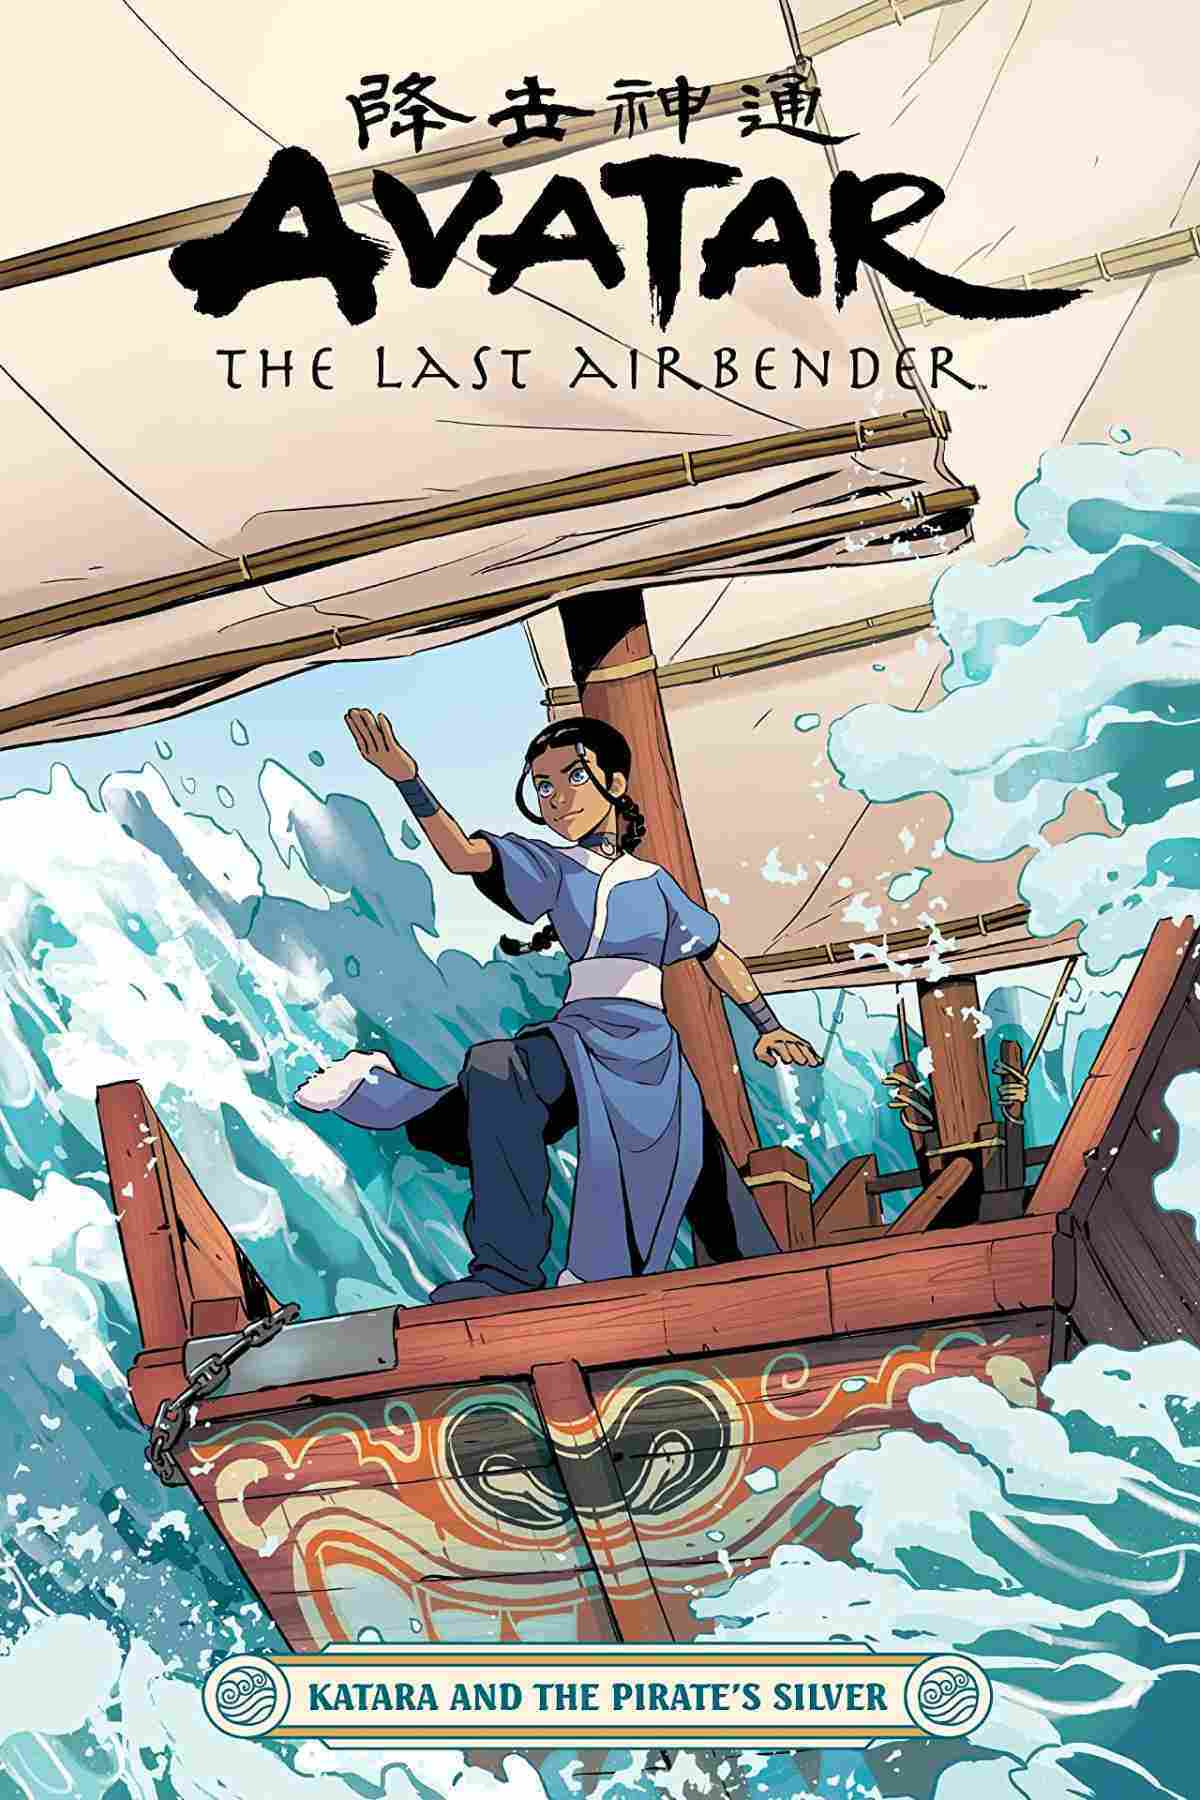 Avatar The Last Airbender—Katara and the Pirate's Silver